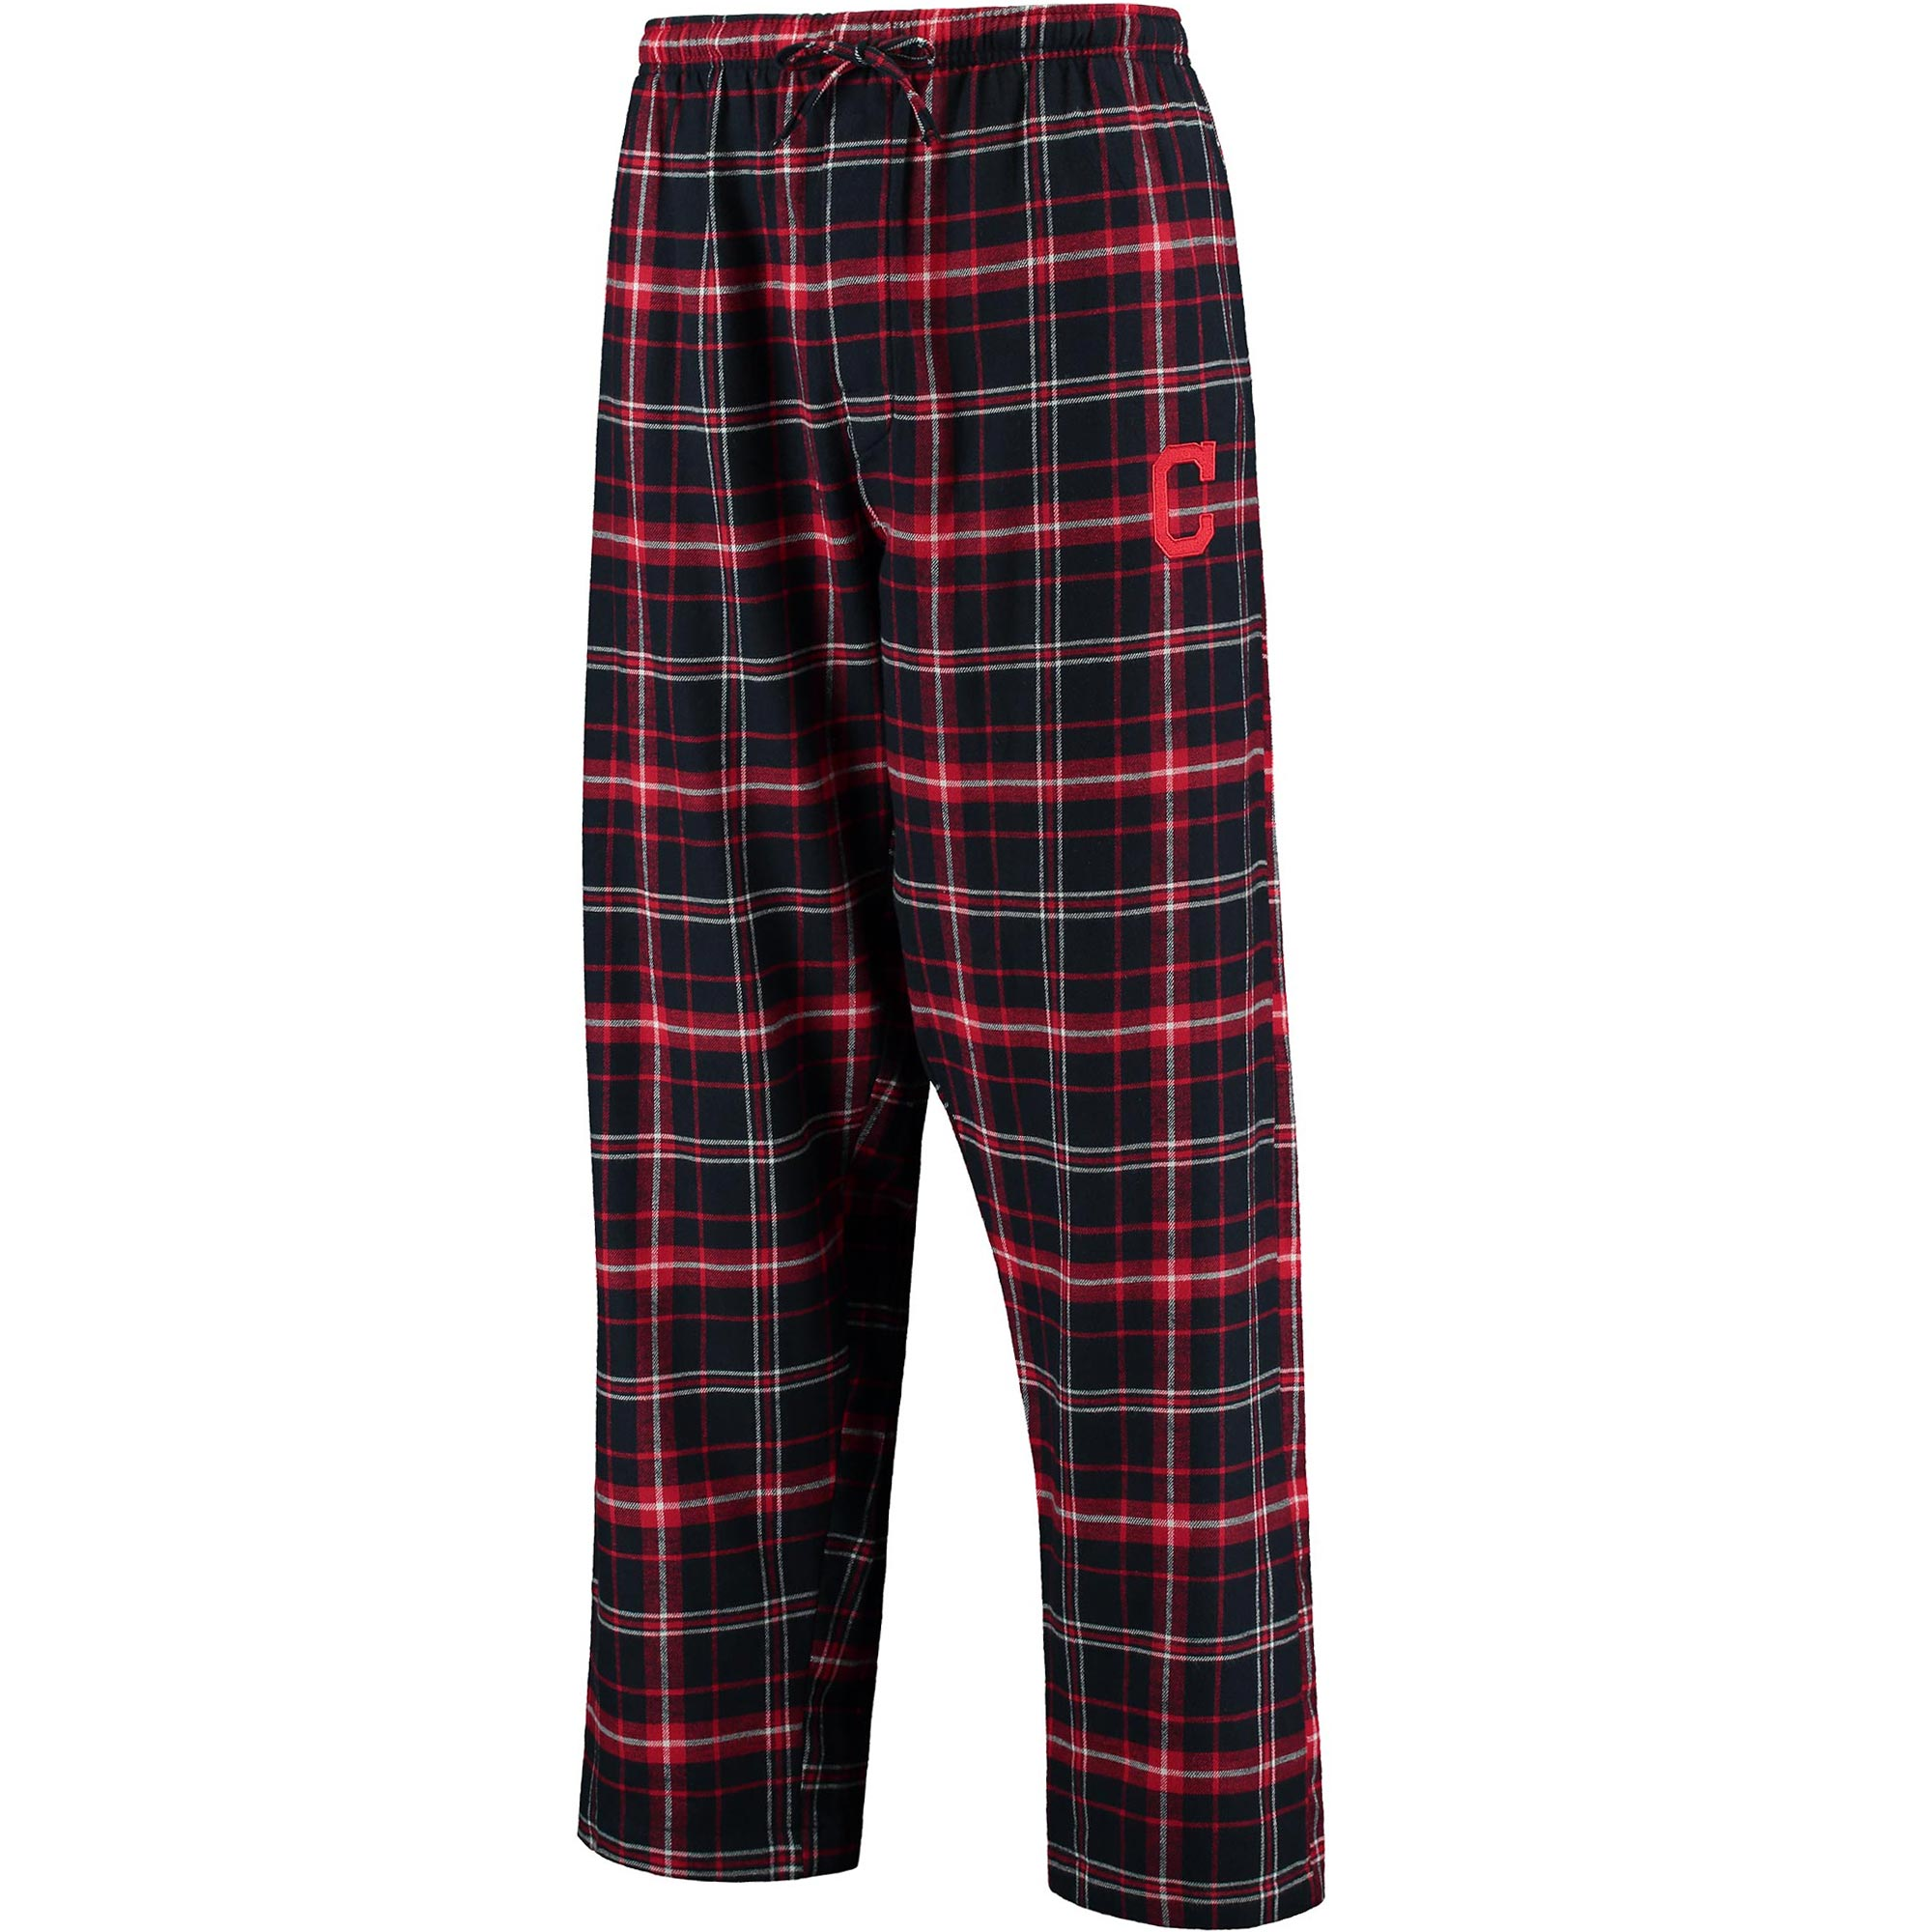 Cleveland Indians Concepts Sport Ultimate Plaid Flannel Pants - Navy/Red